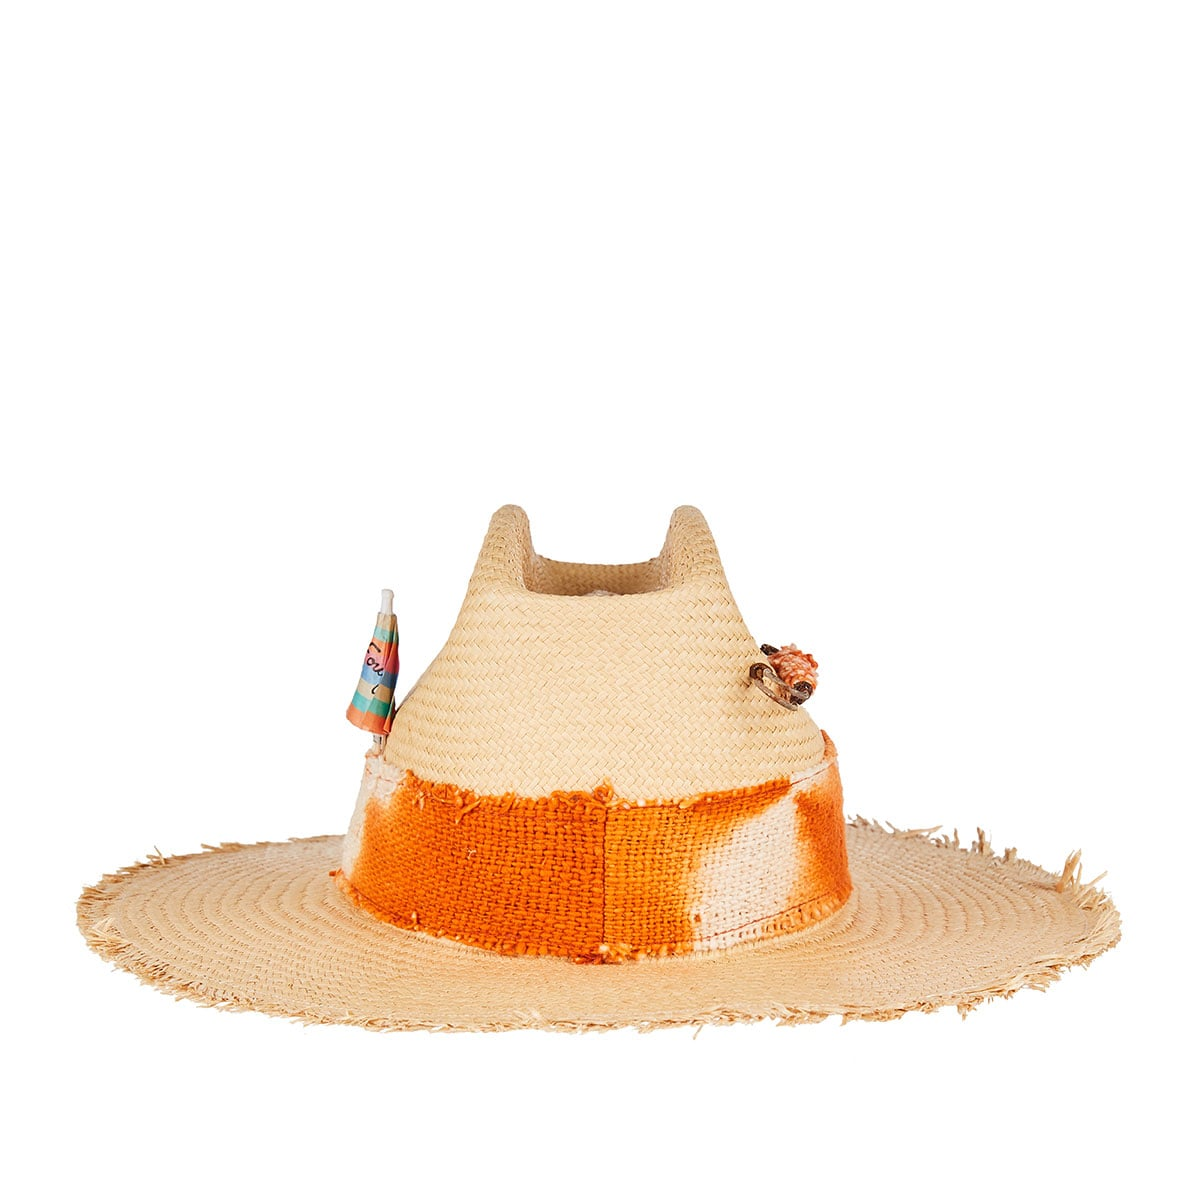 Machete straw fedora hat